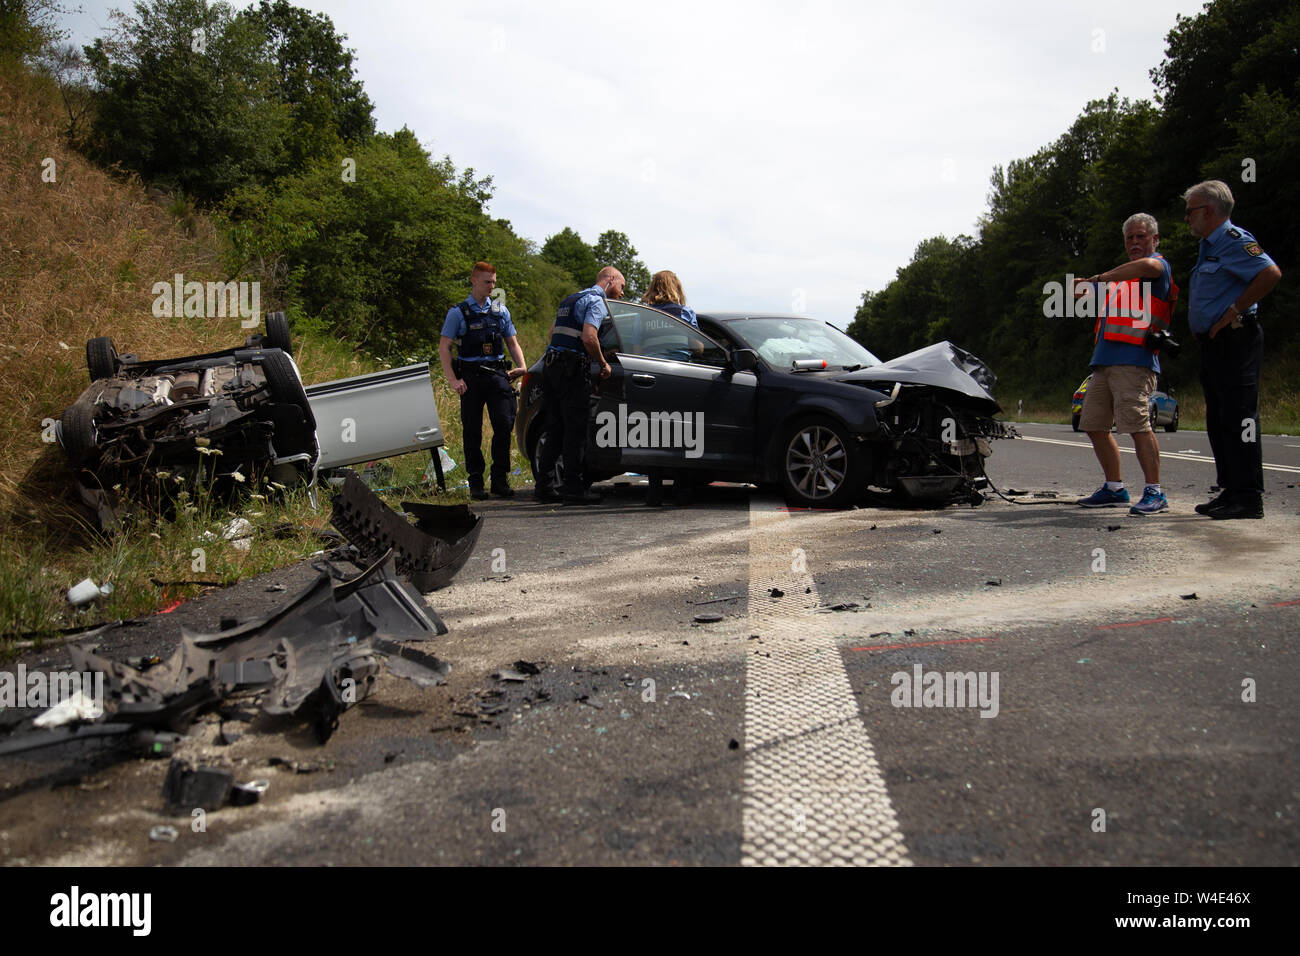 Mertesdorf, Germany  22nd July, 2019  Police officers are